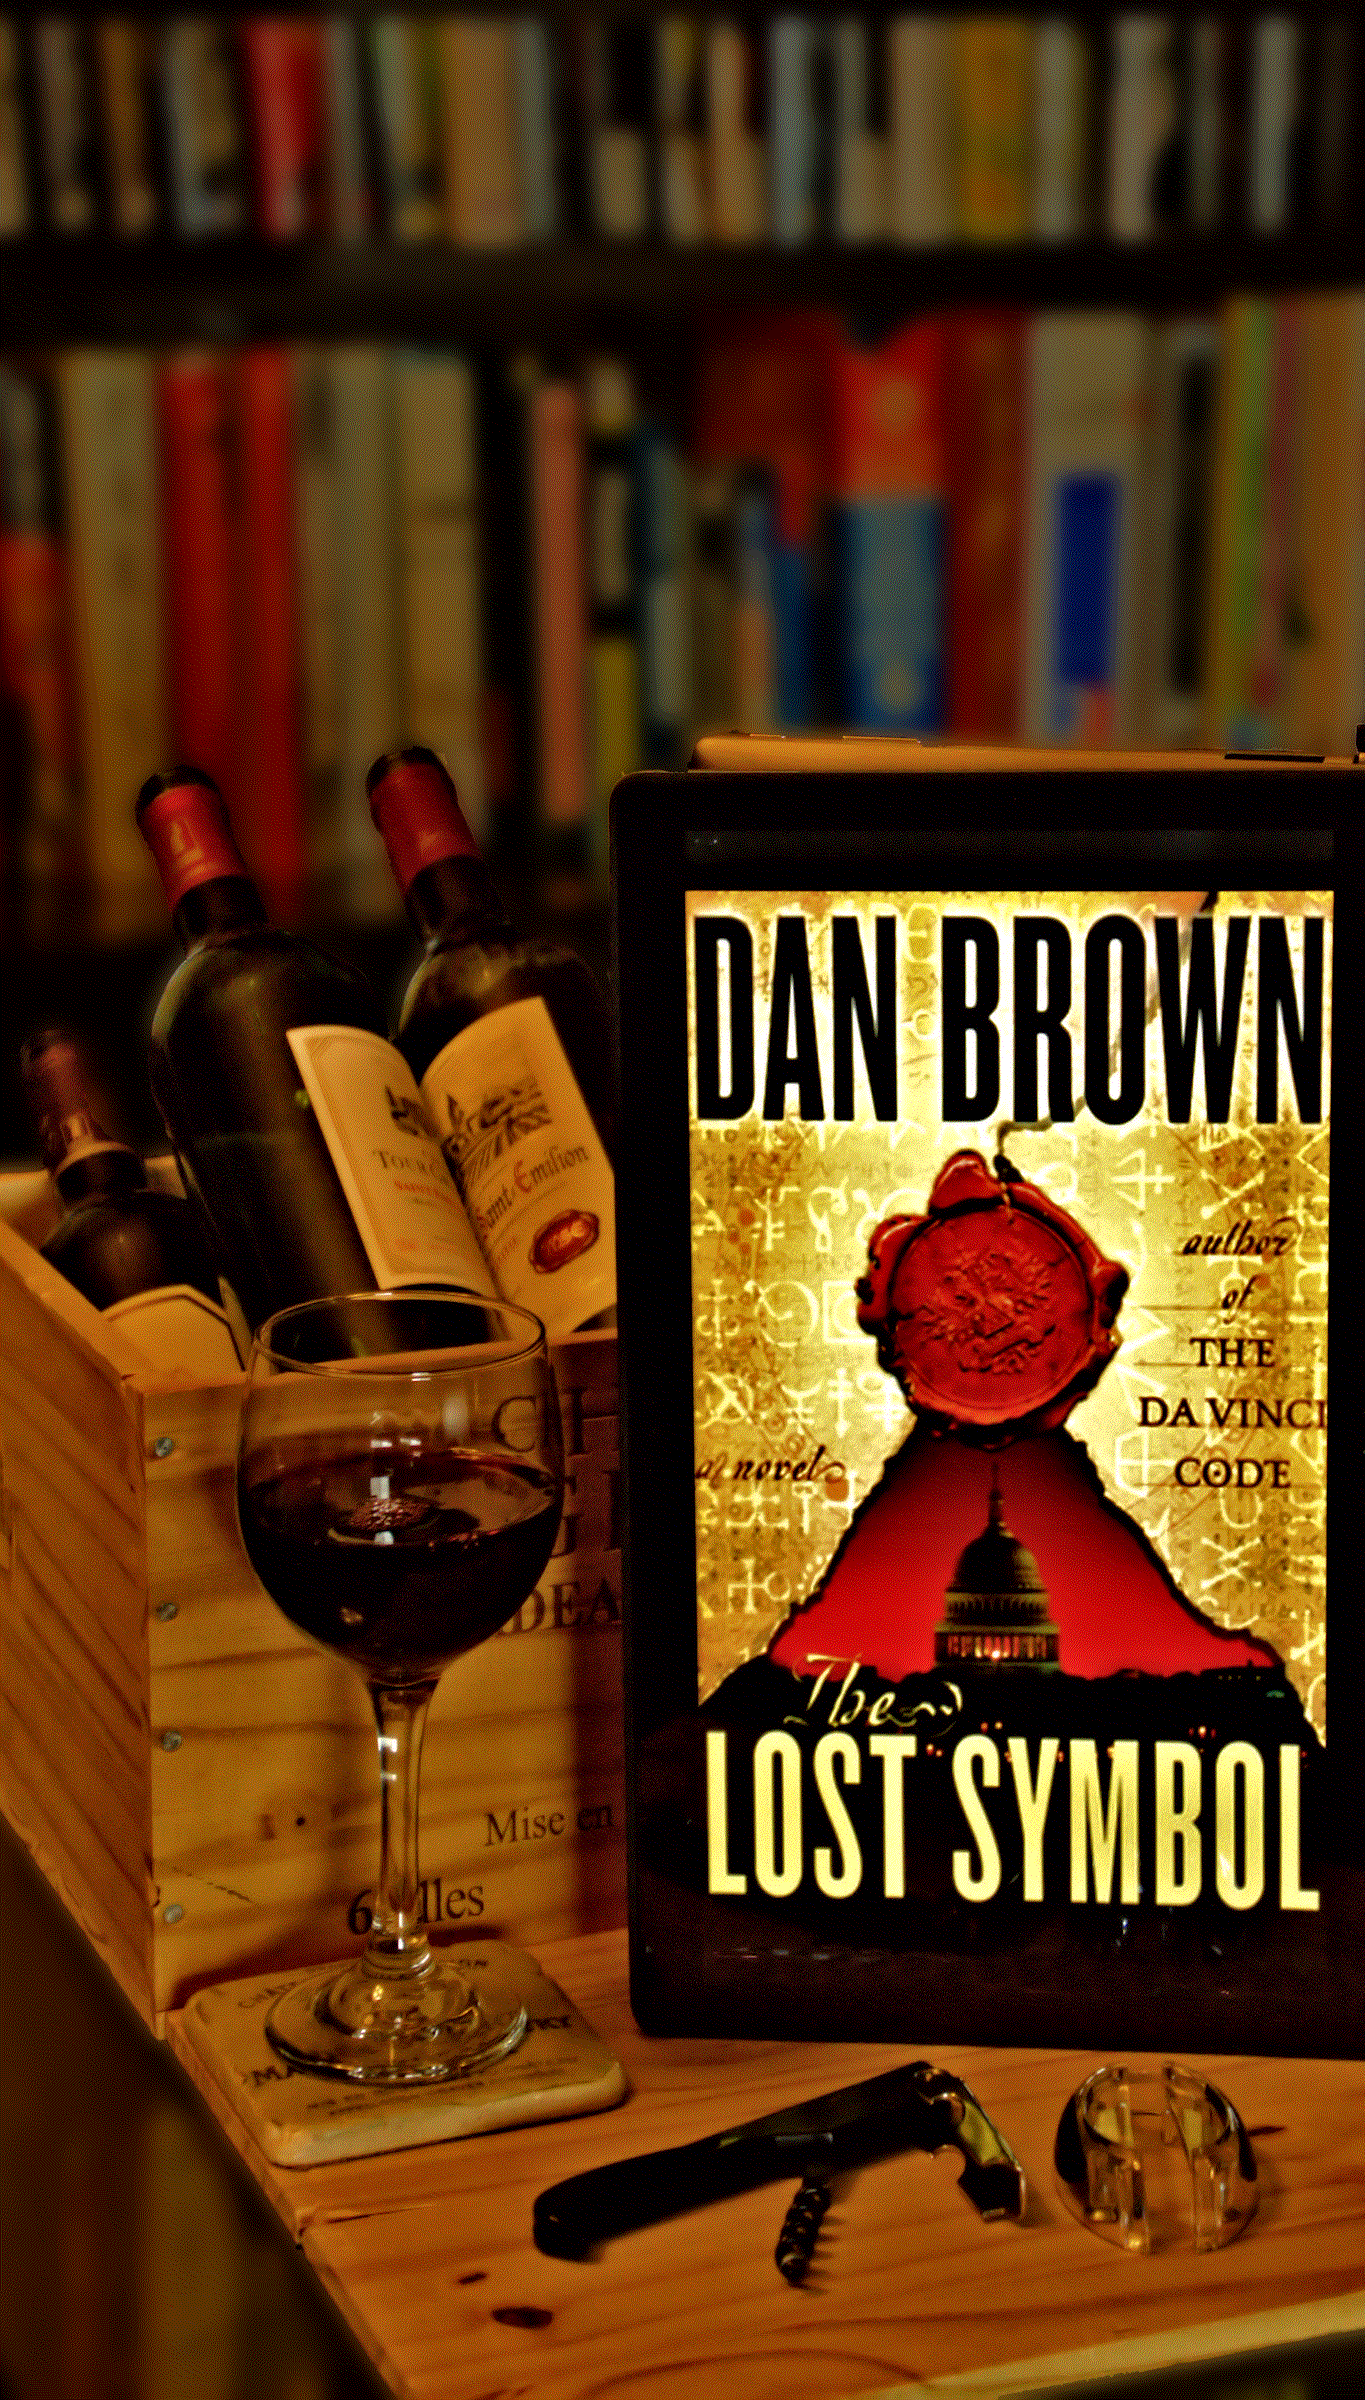 From Dan Brown book photos - Week of Sept. 18th to 22nd